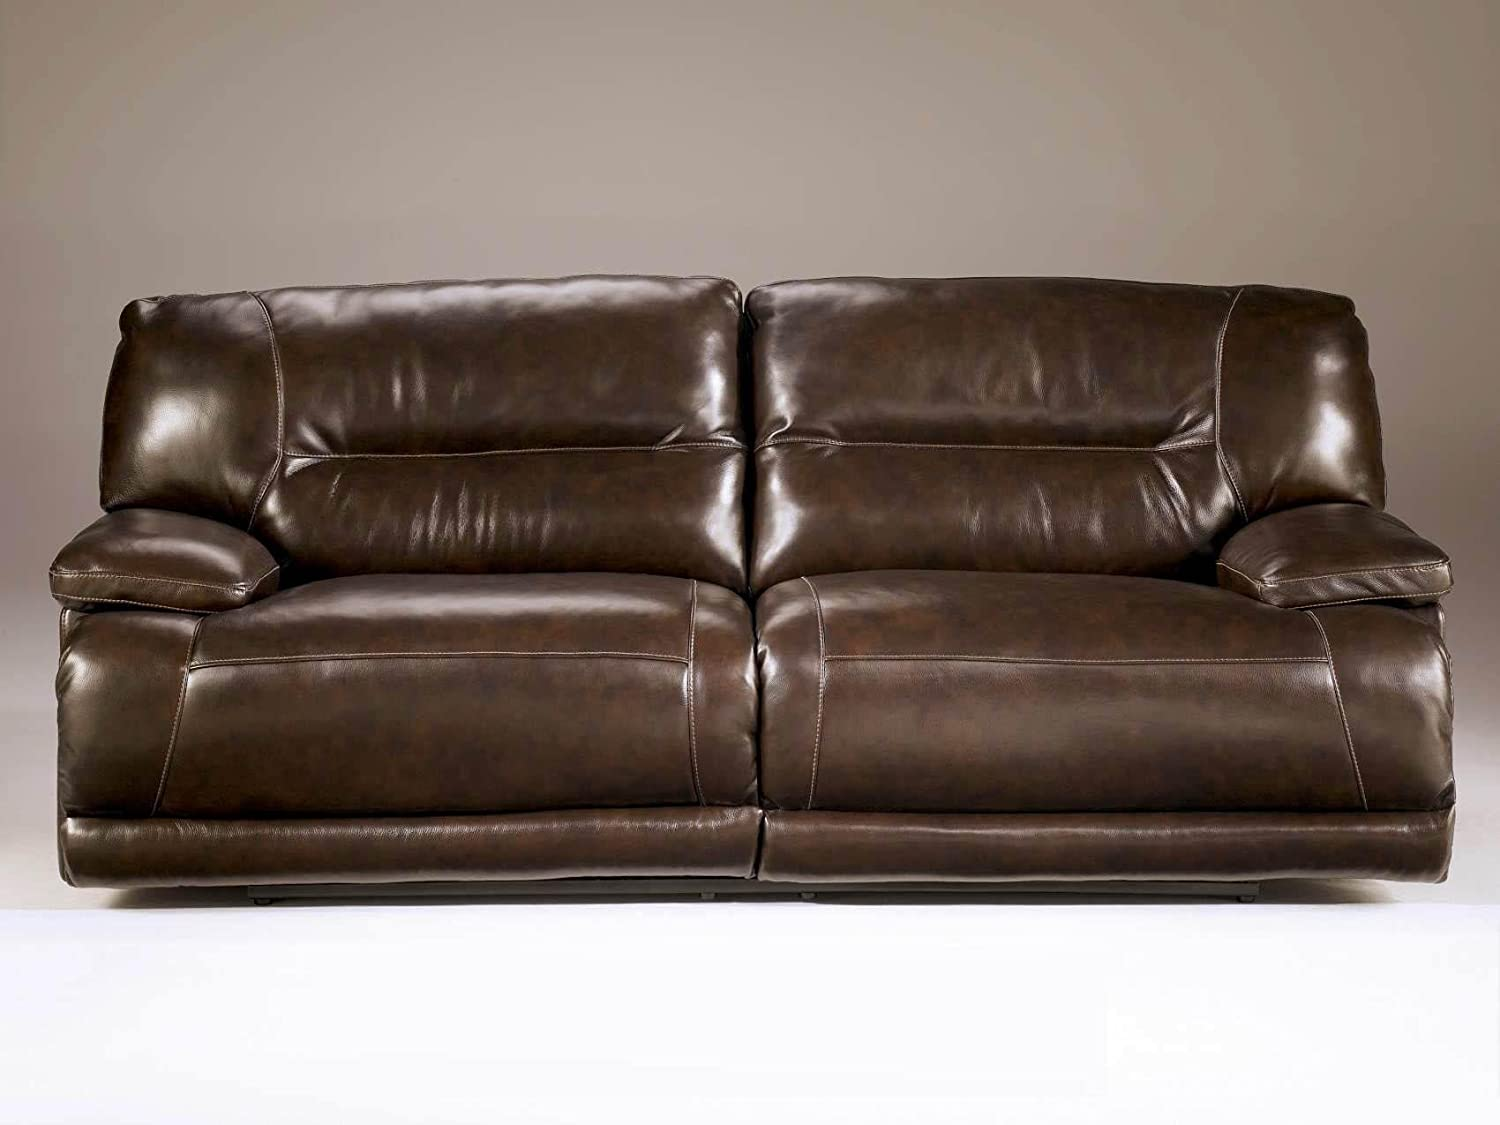 Amazon.com Ashley Furniture Signature Design - Exhilaration Recliner Sofa - Power Reclining Couch - Chocolate Brown Kitchen u0026 Dining & Amazon.com: Ashley Furniture Signature Design - Exhilaration ... islam-shia.org